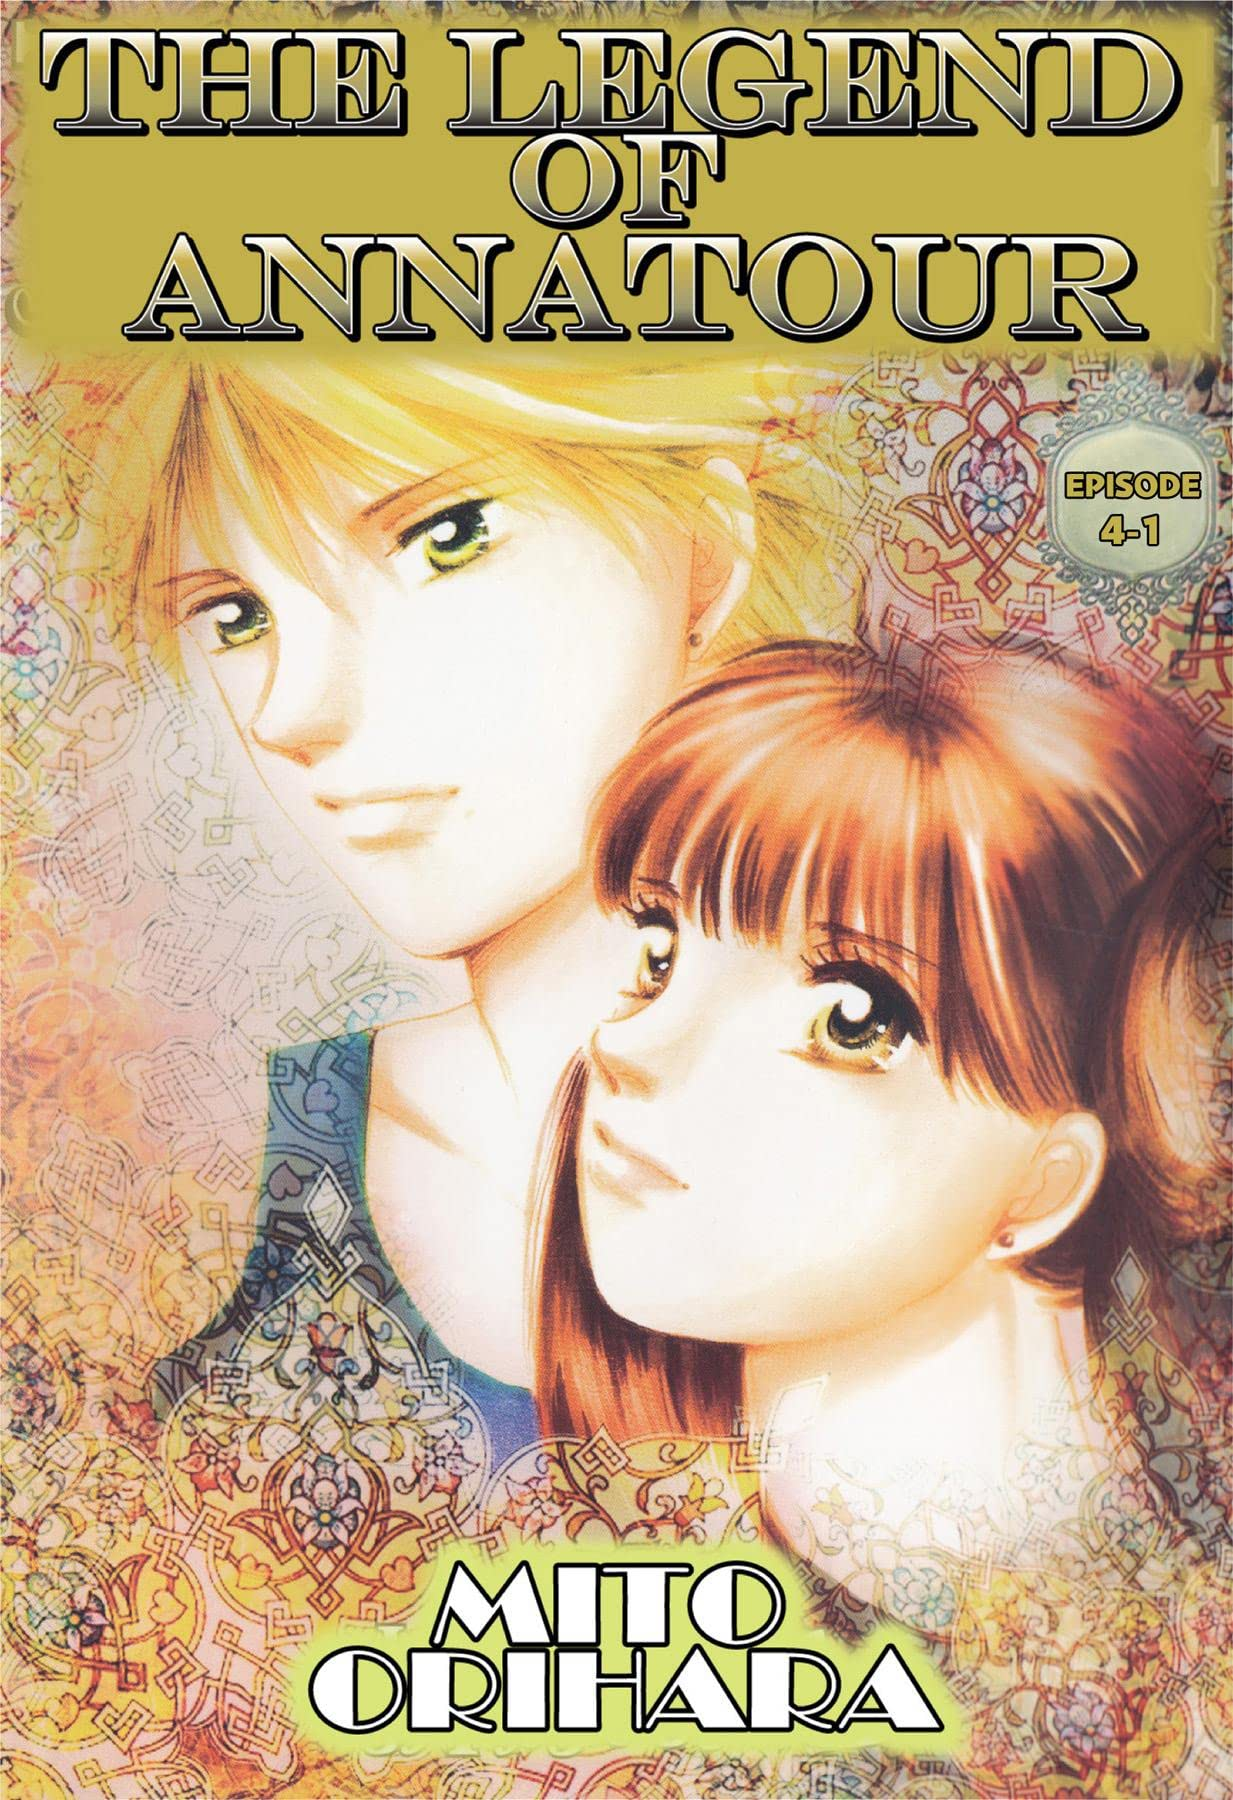 THE LEGEND OF ANNATOUR #22